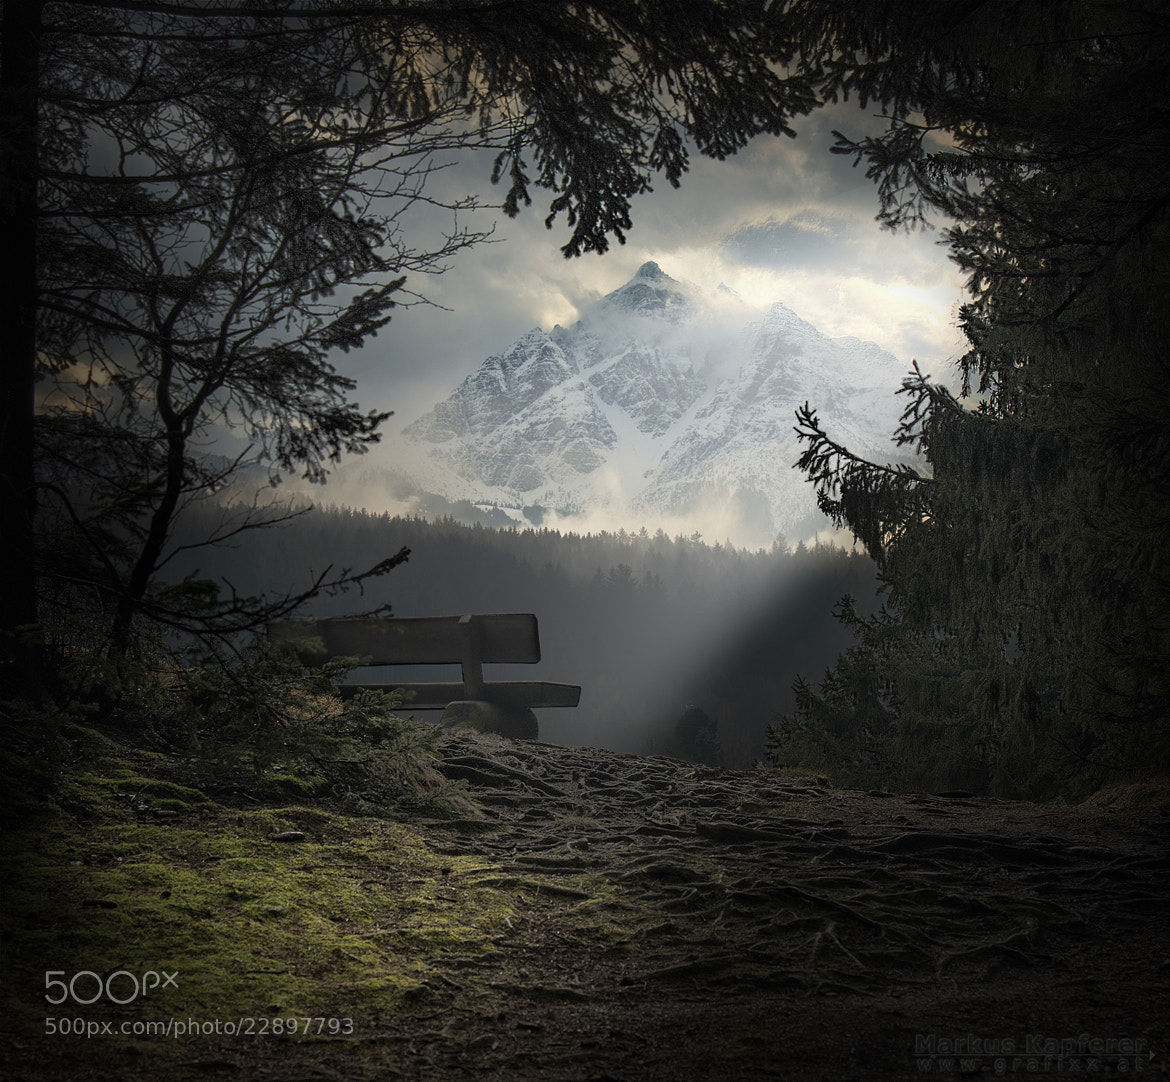 Photograph Mountain View by Markus Kapferer on 500px